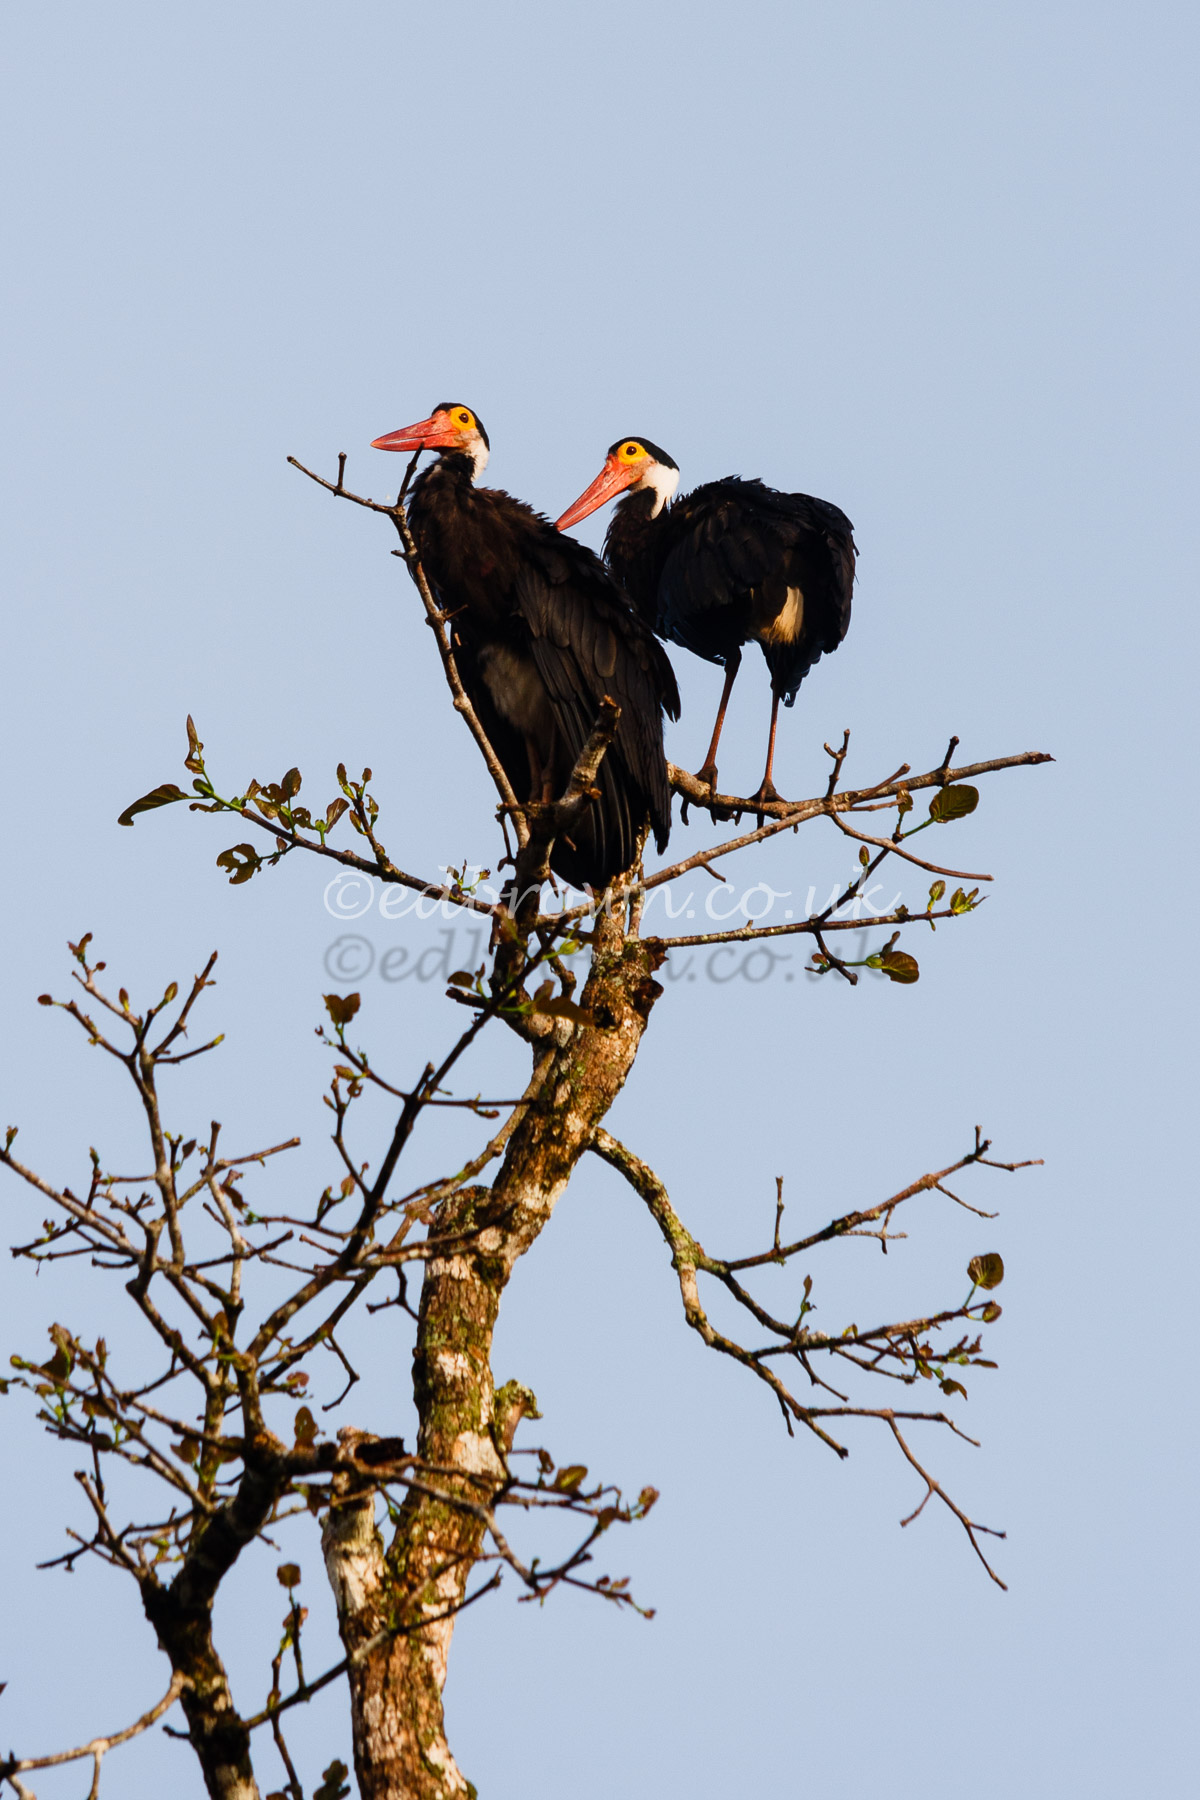 Storms stork (Ciconia stormi)